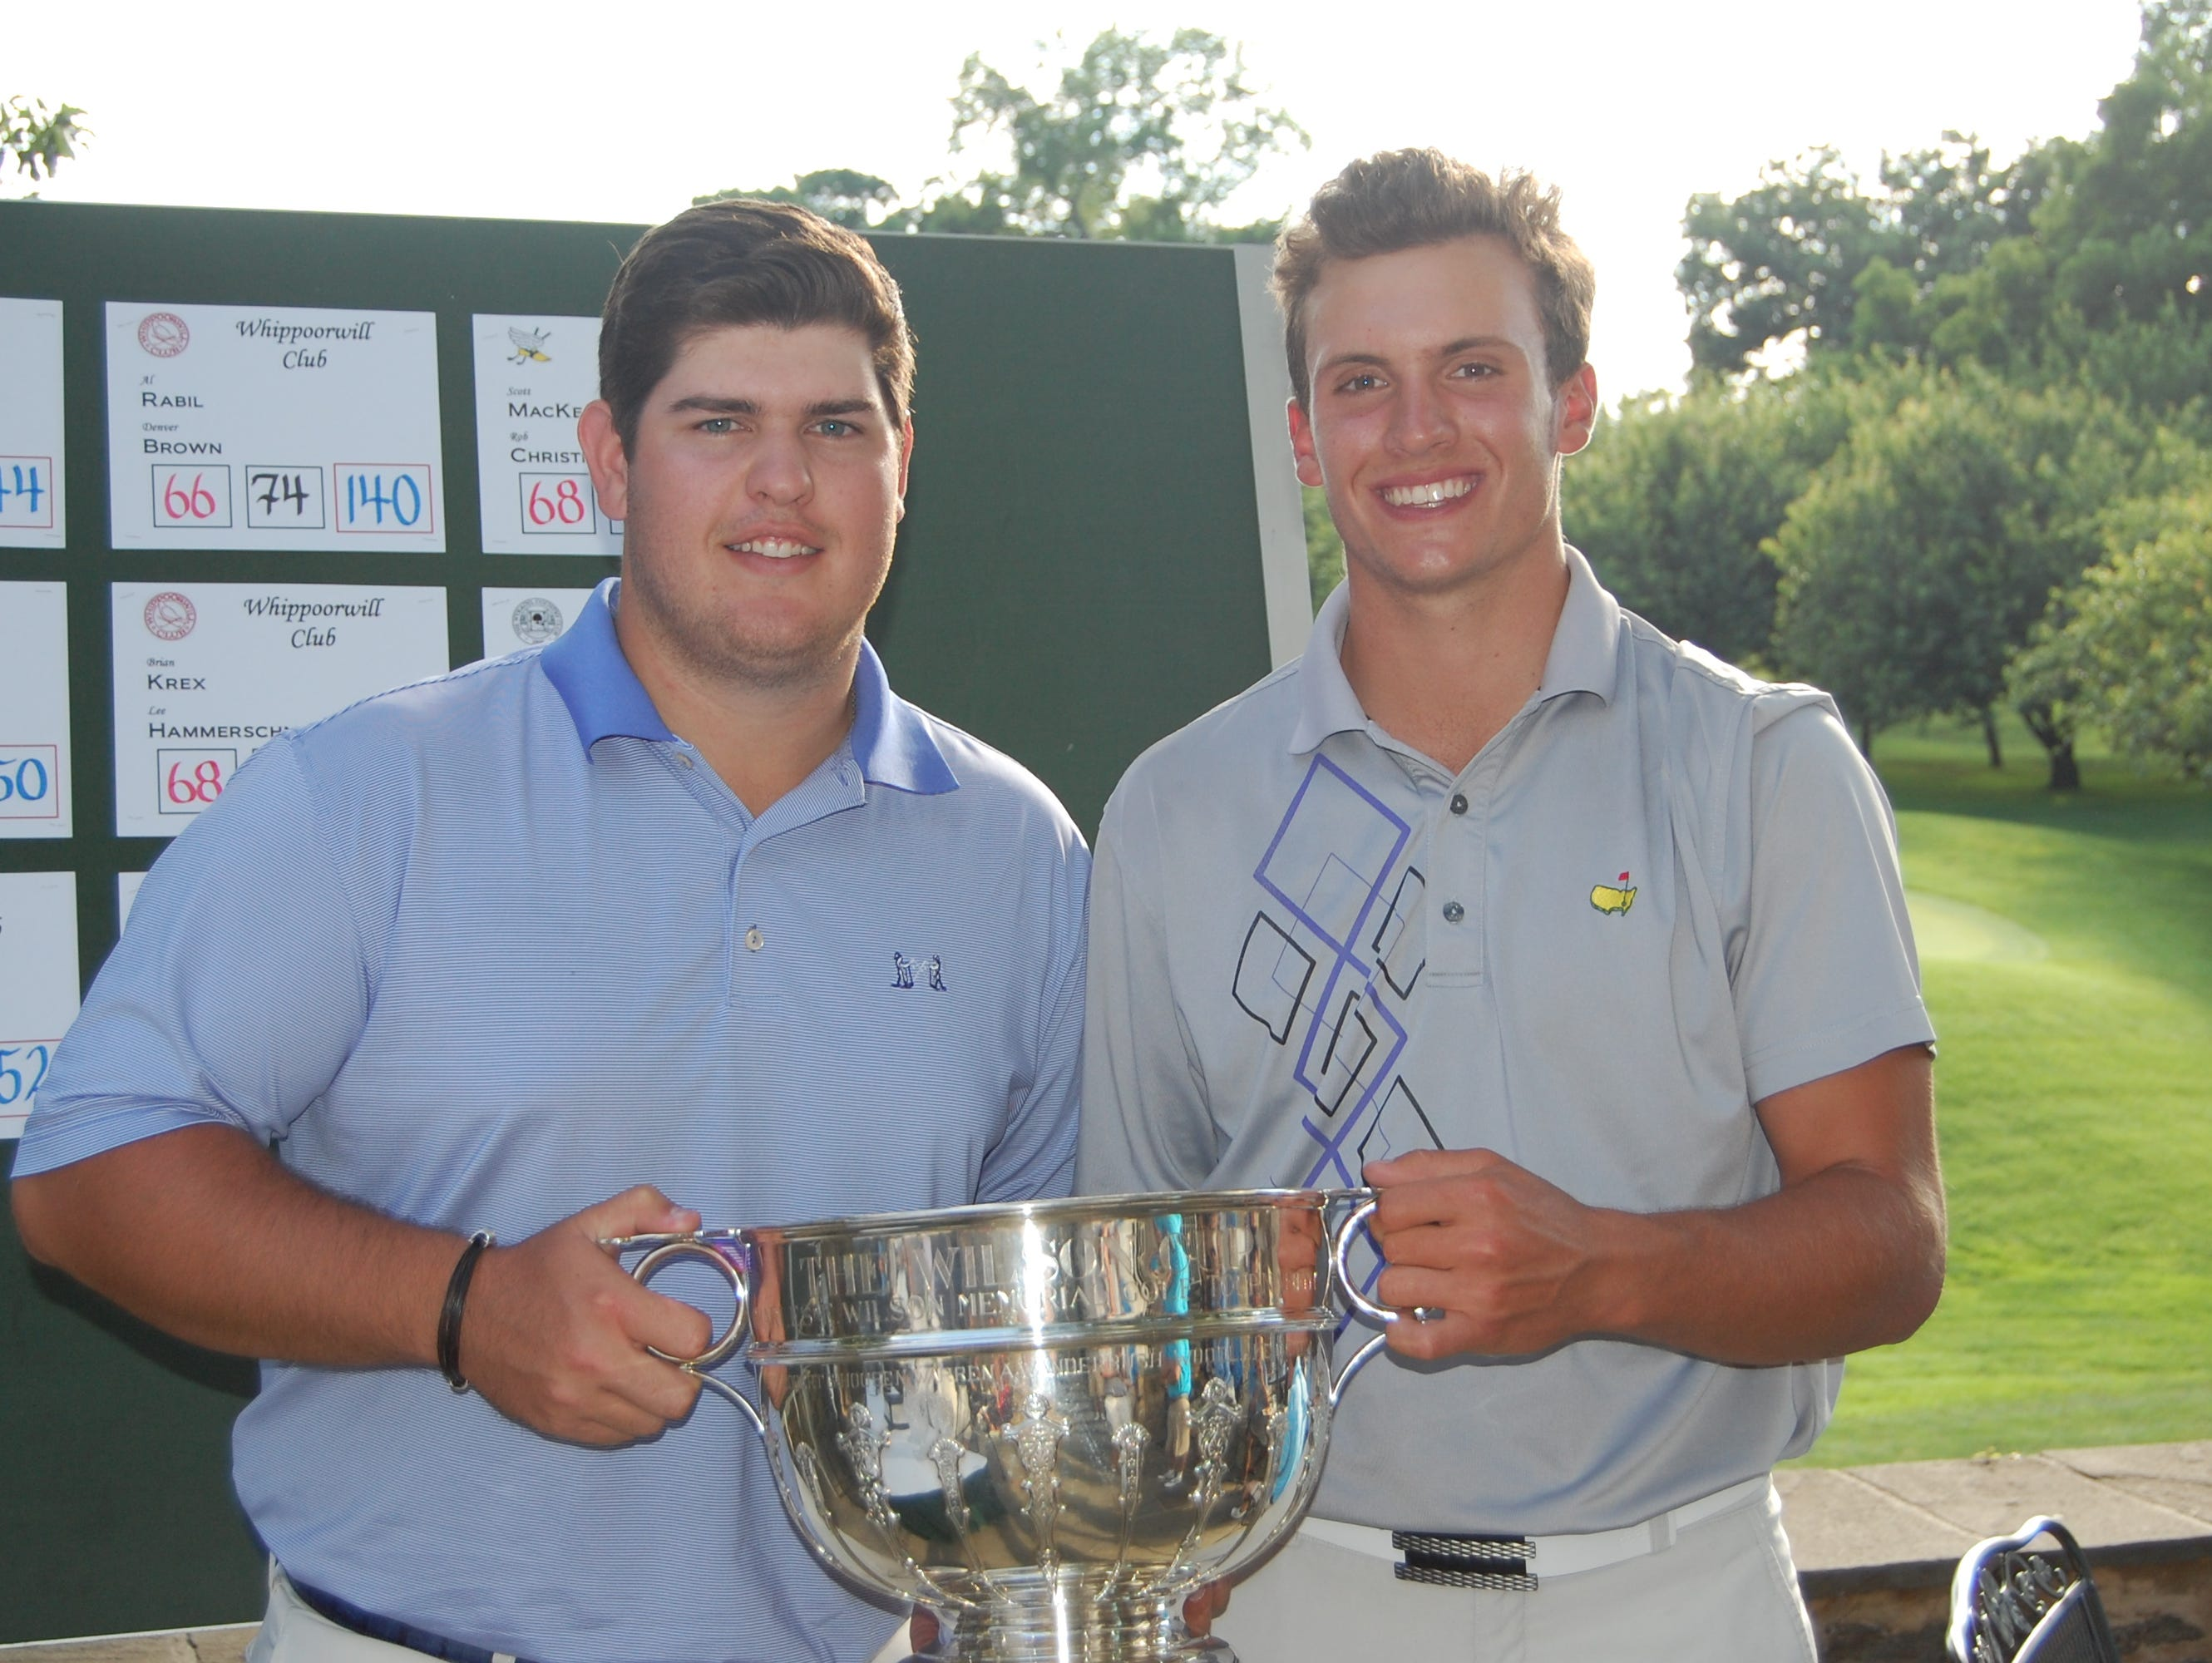 Chris Troy and James Nicholas teamed up to win the Wilson Cup at Scarsdale Golf Club on Friday. The Winged Foot partners were 13-under and won by four.